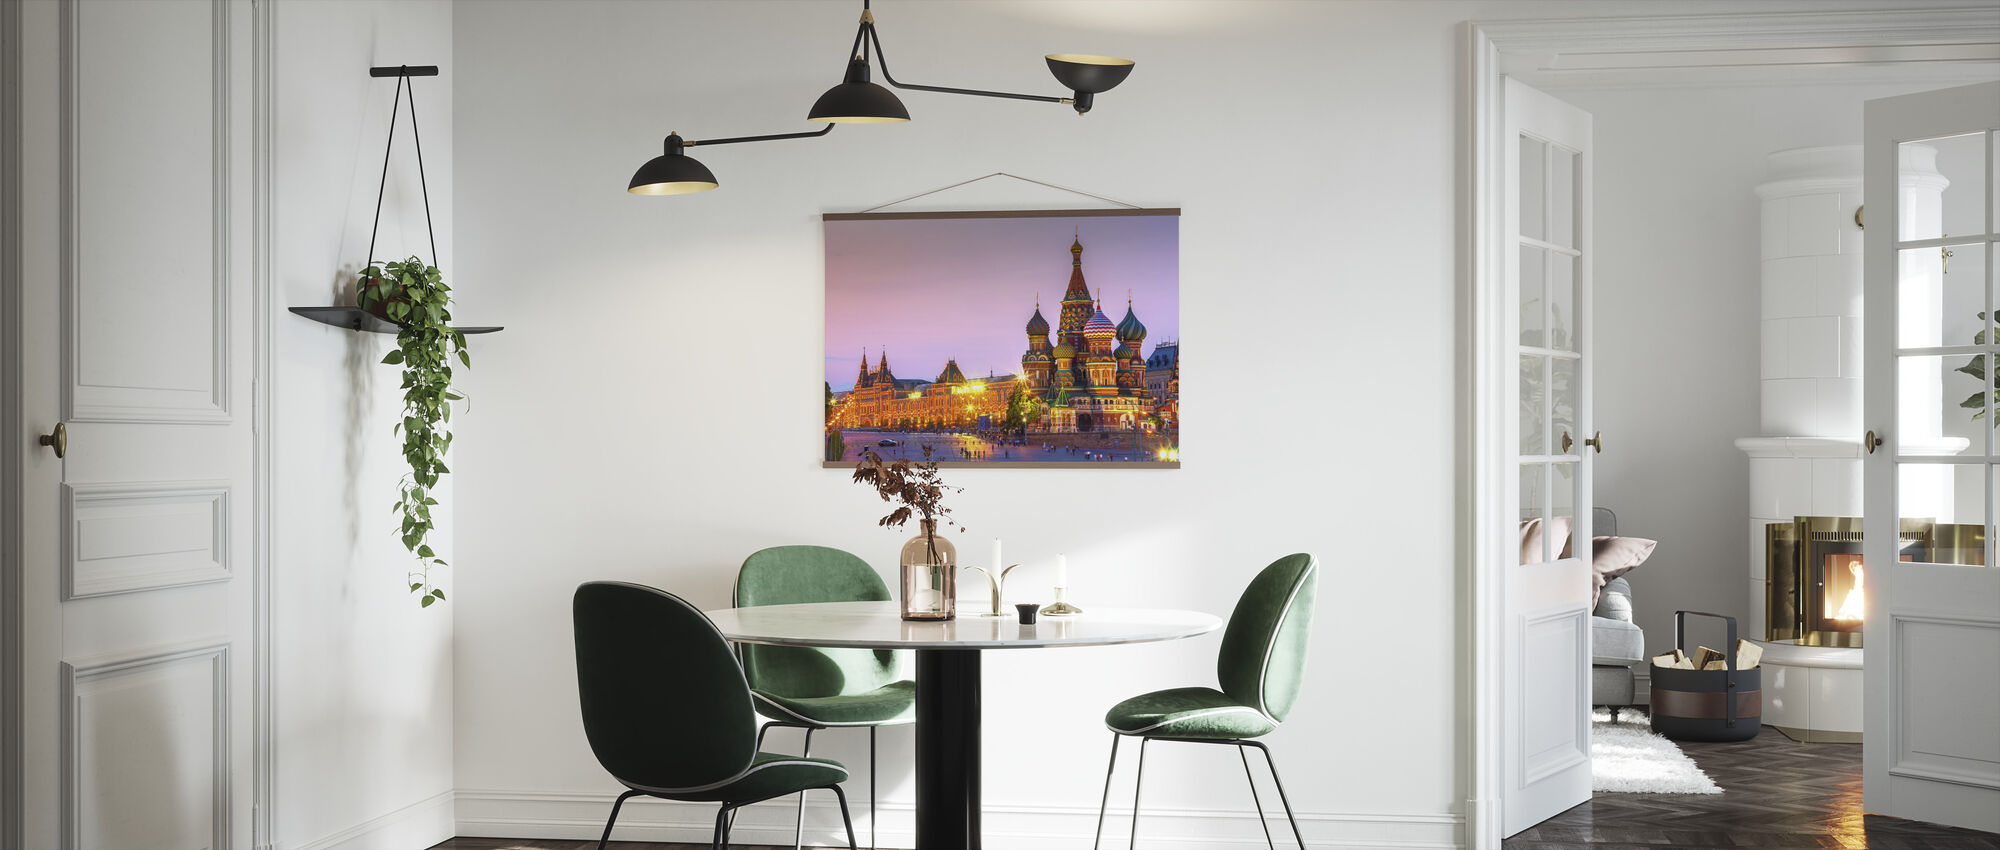 Twilight time of Saint Basils Cathedral - Poster - Kitchen